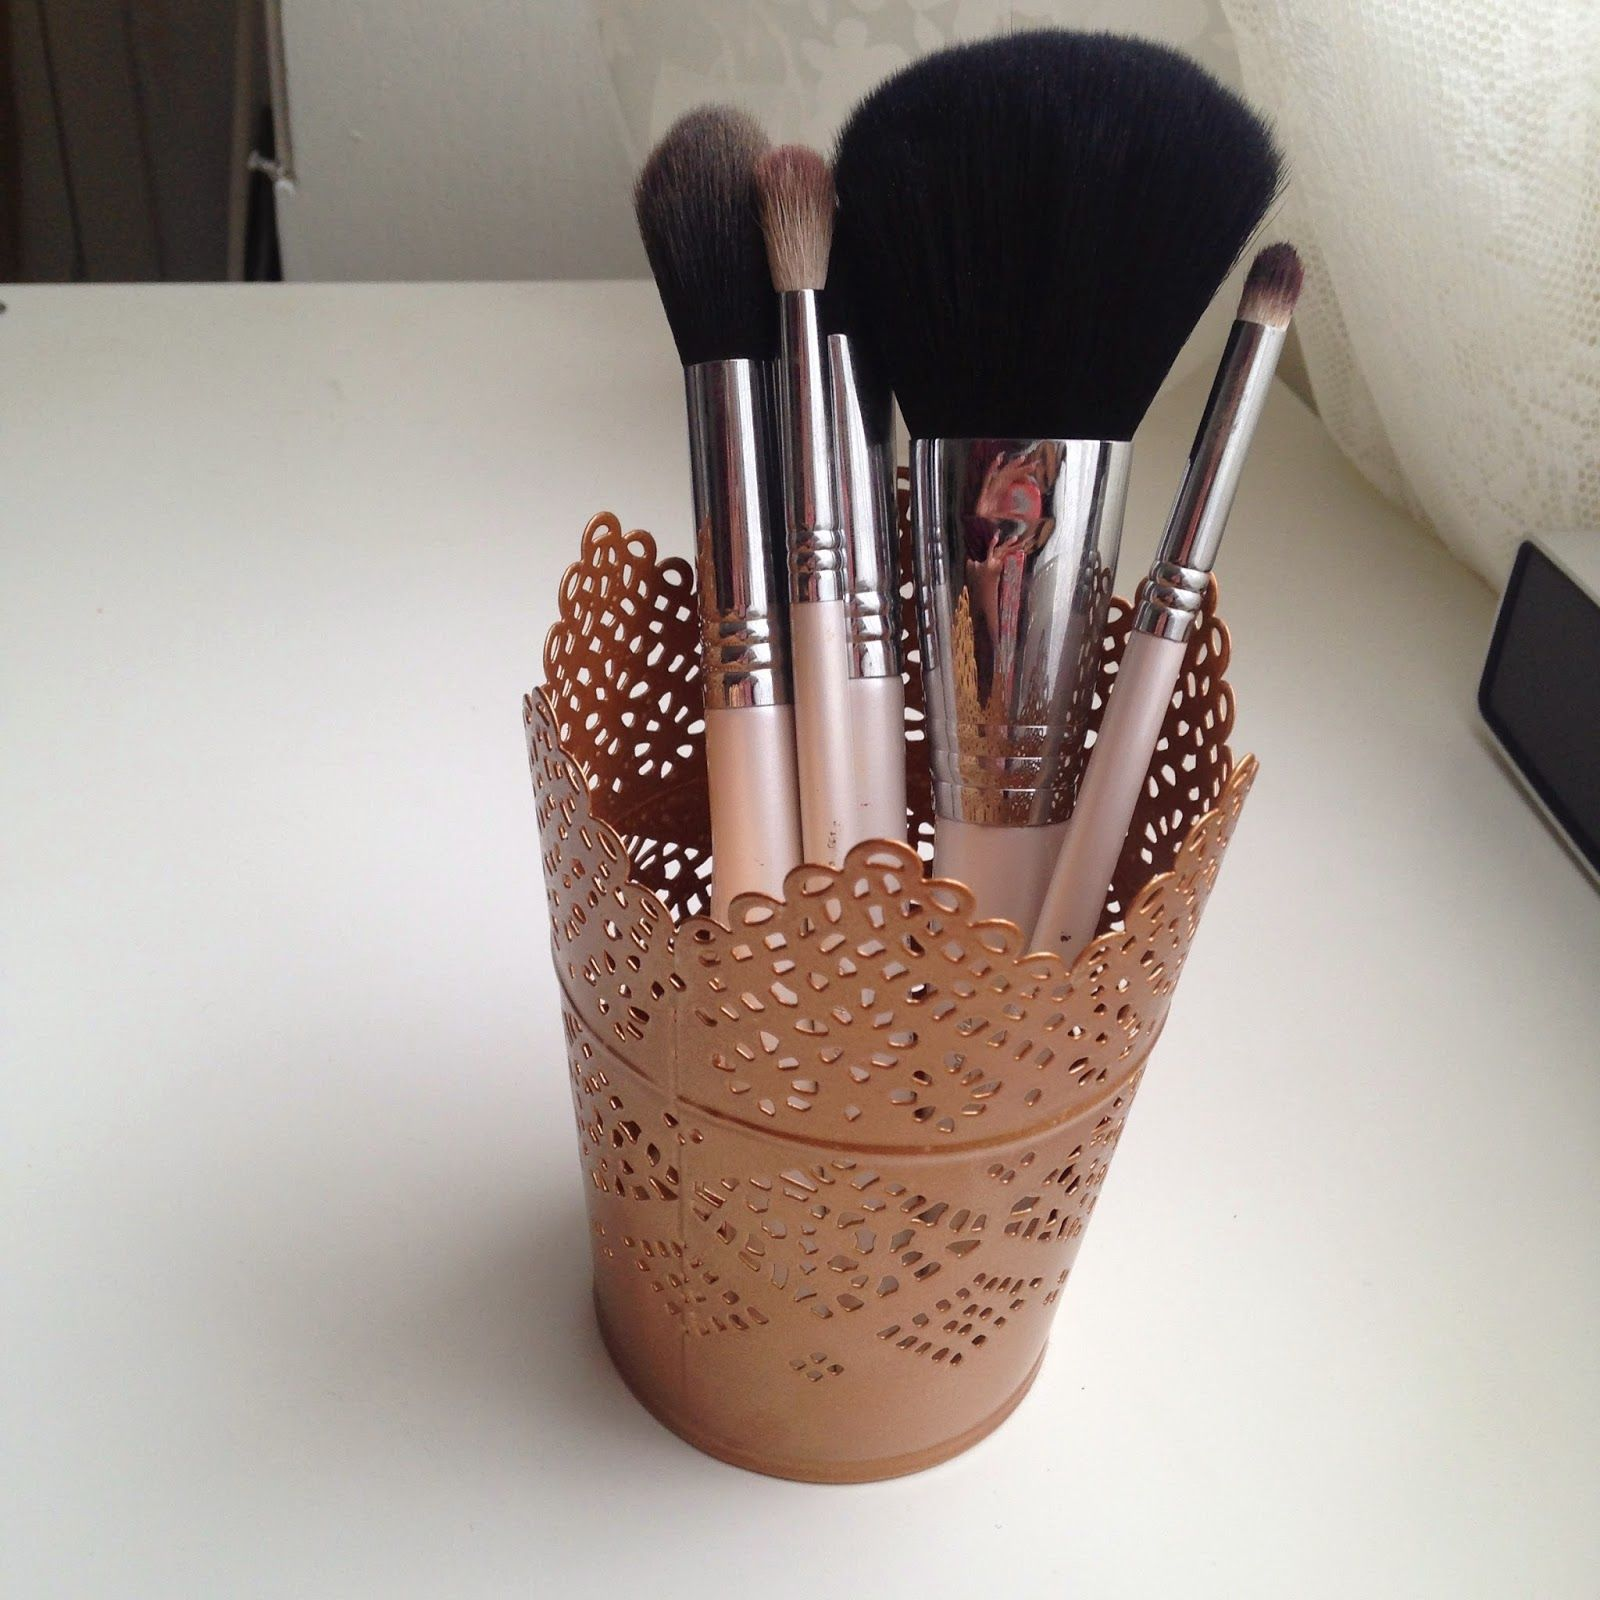 DIY ROSE GOLD BRUSH HOLDERS DIY Crafts Pinterest